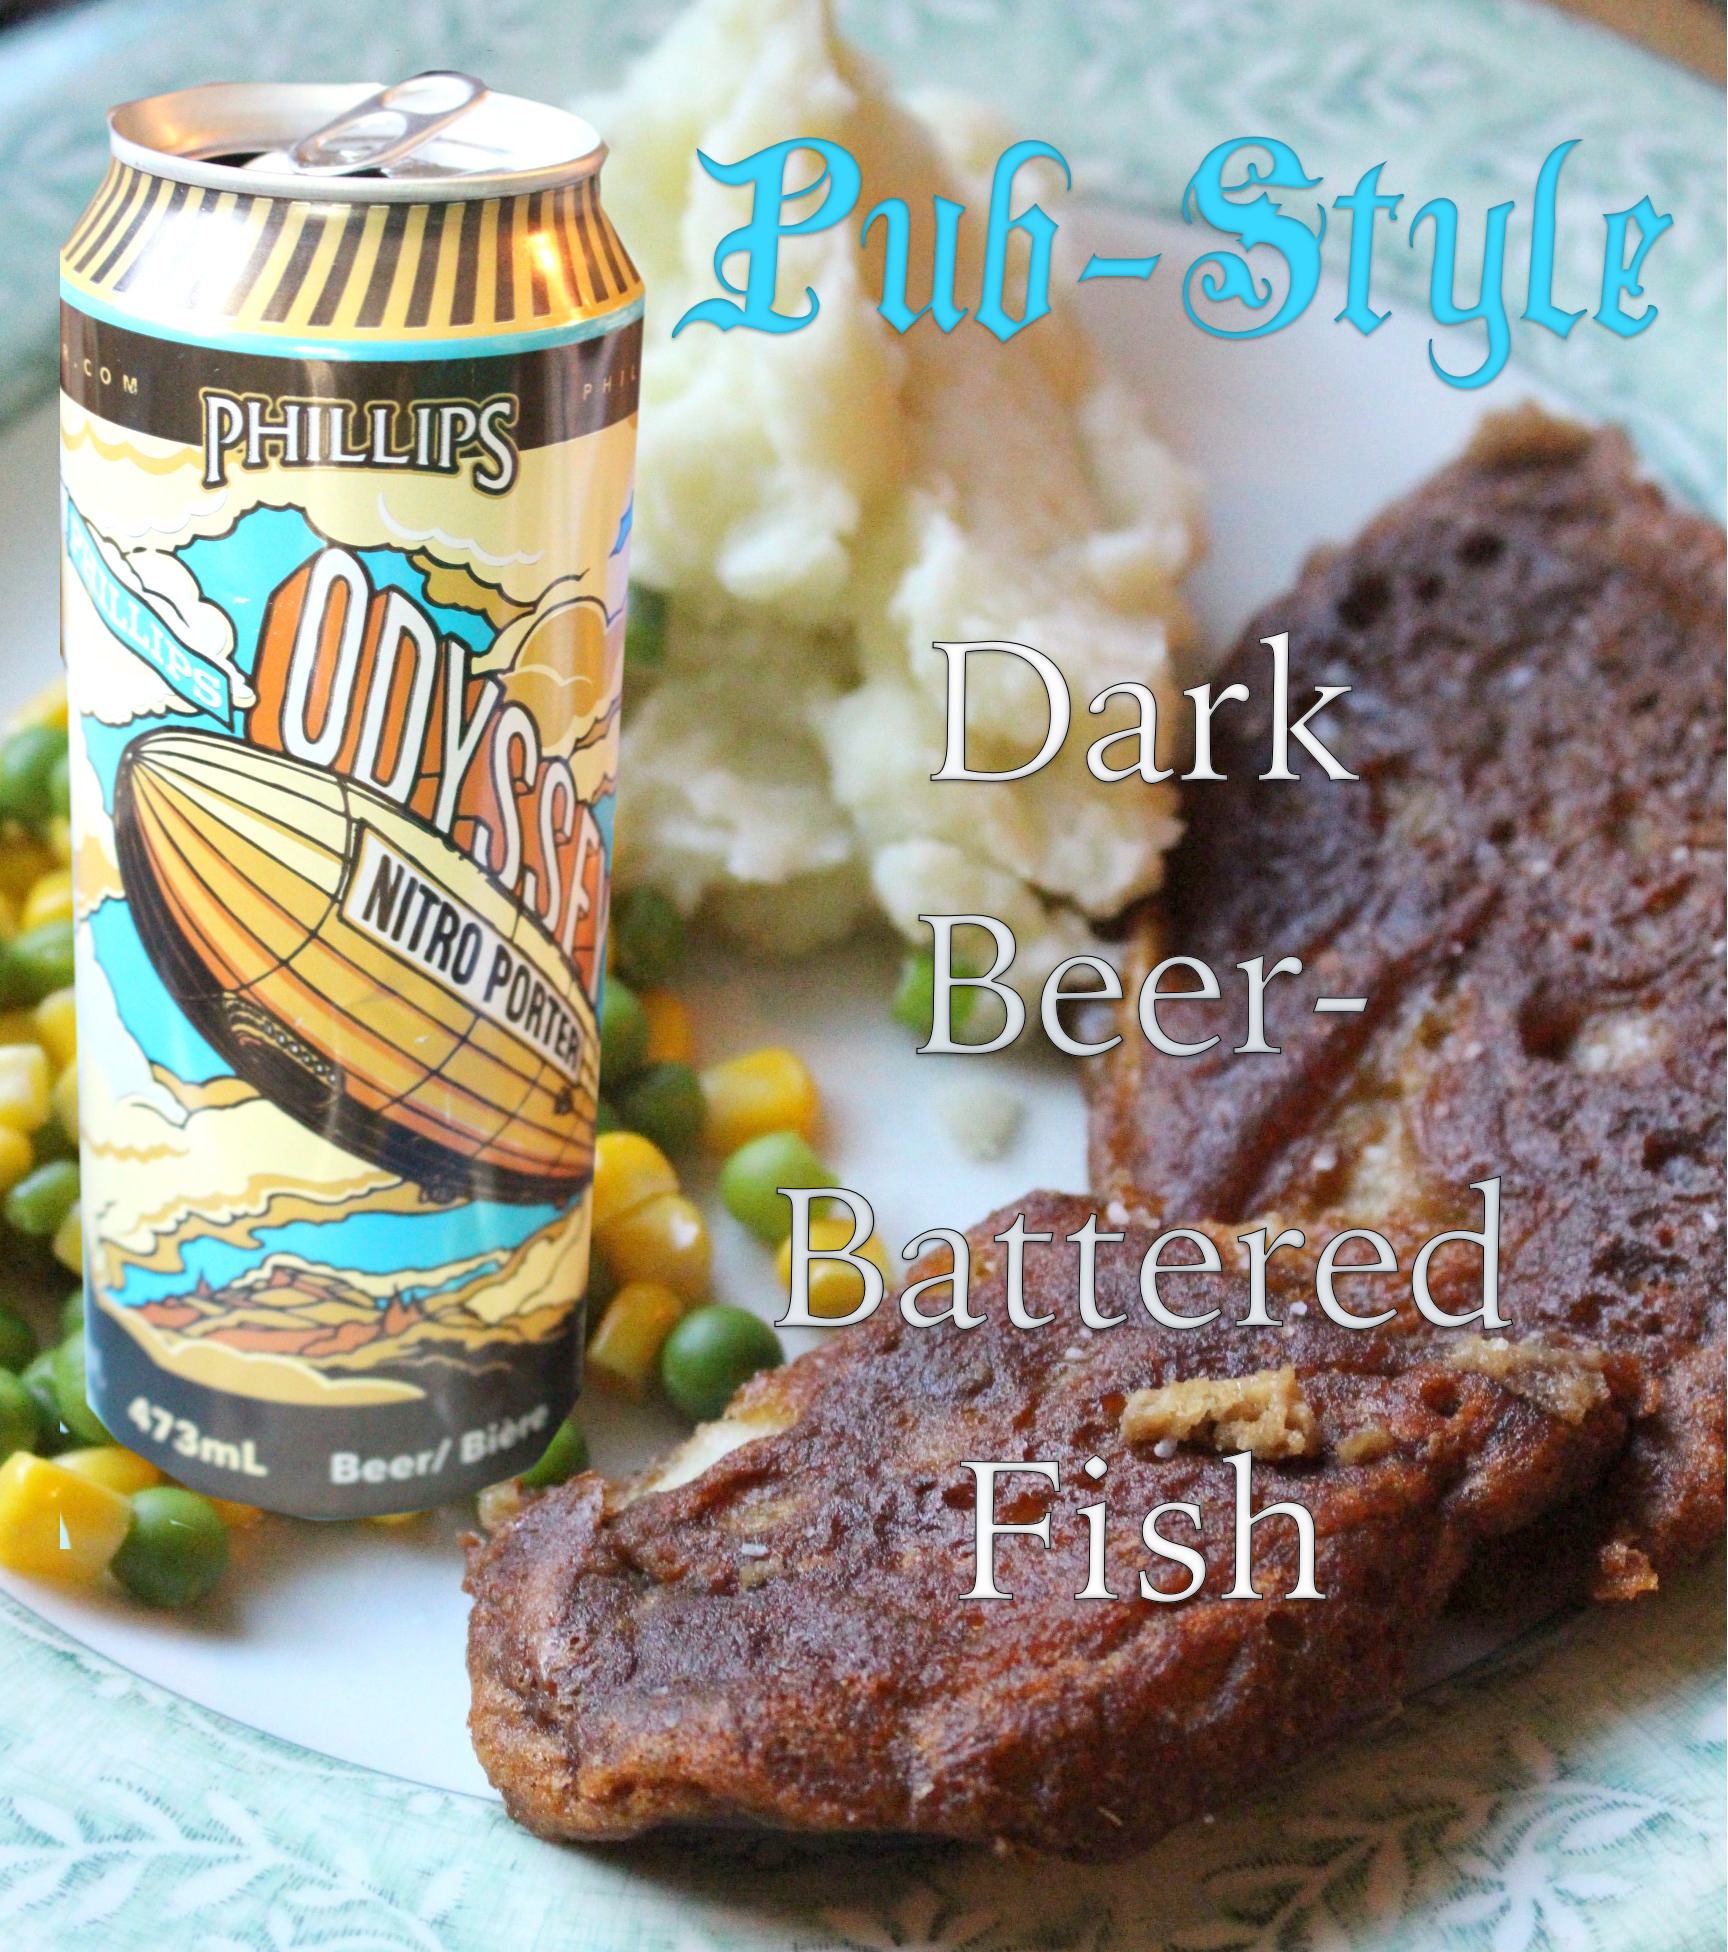 Dark Beer-Battered Fish